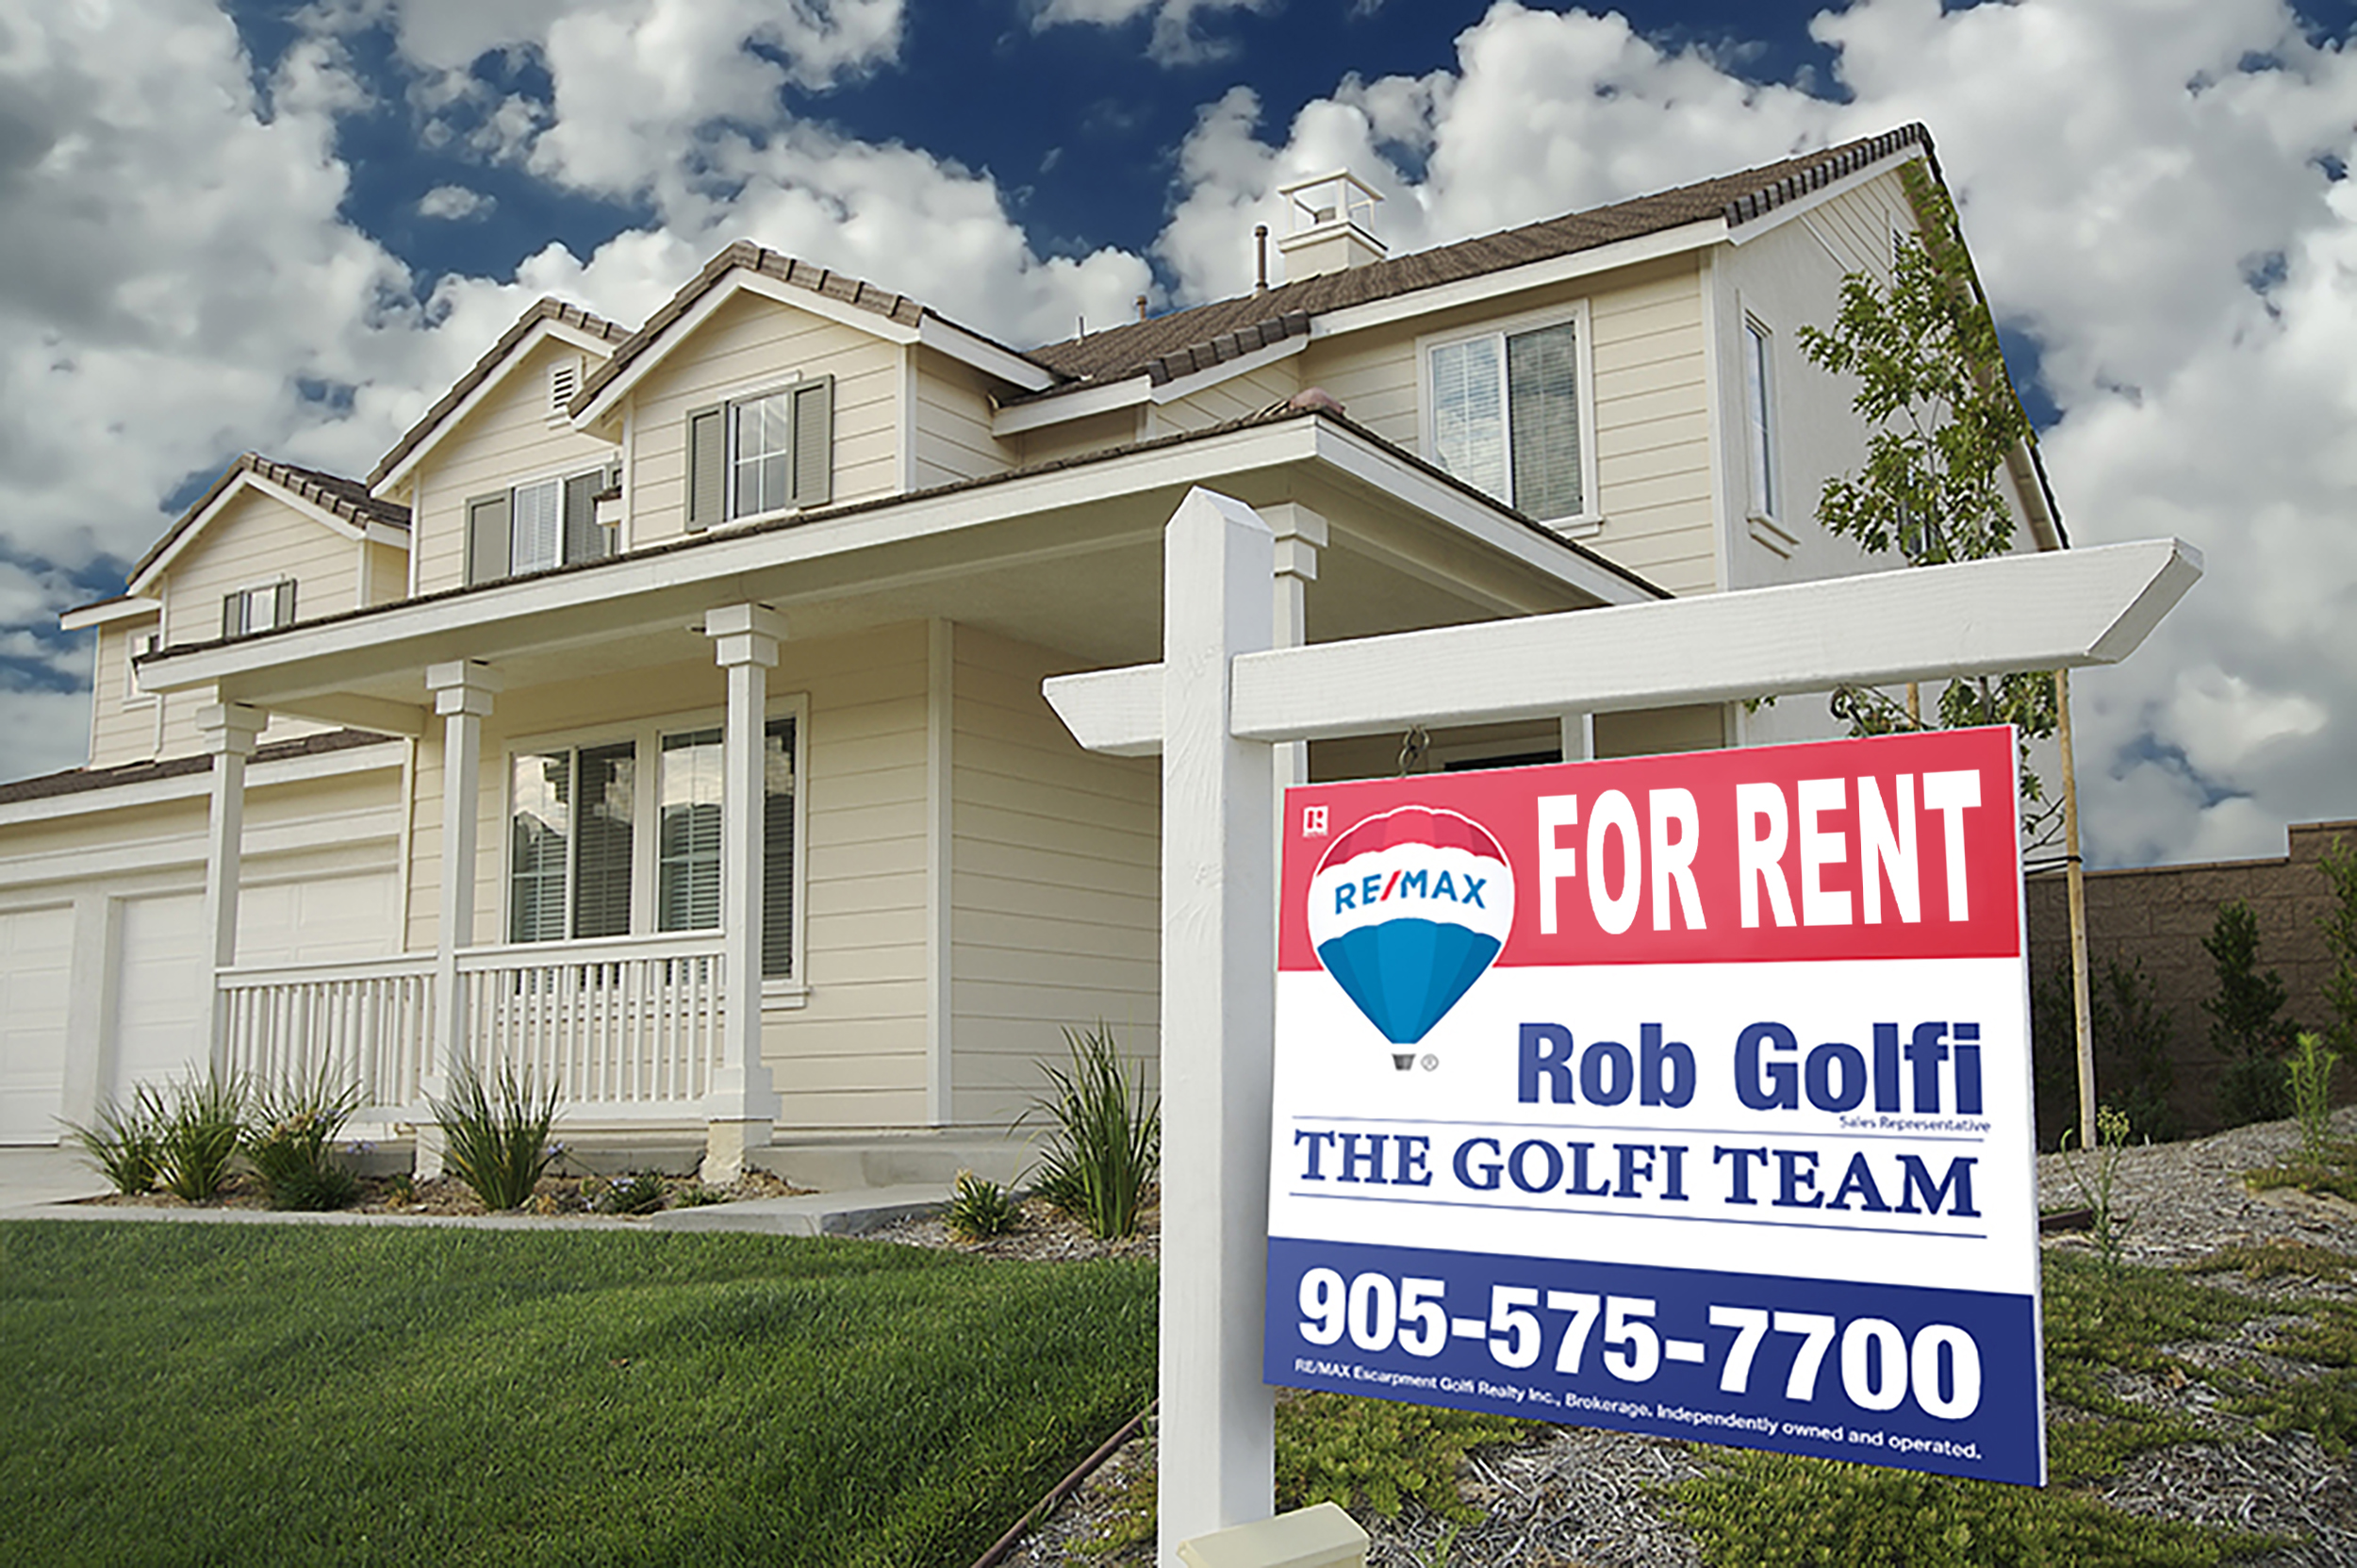 List your home for rent with The Golfi Team, best Hamilton, Halton and Niagara Real Estate agents